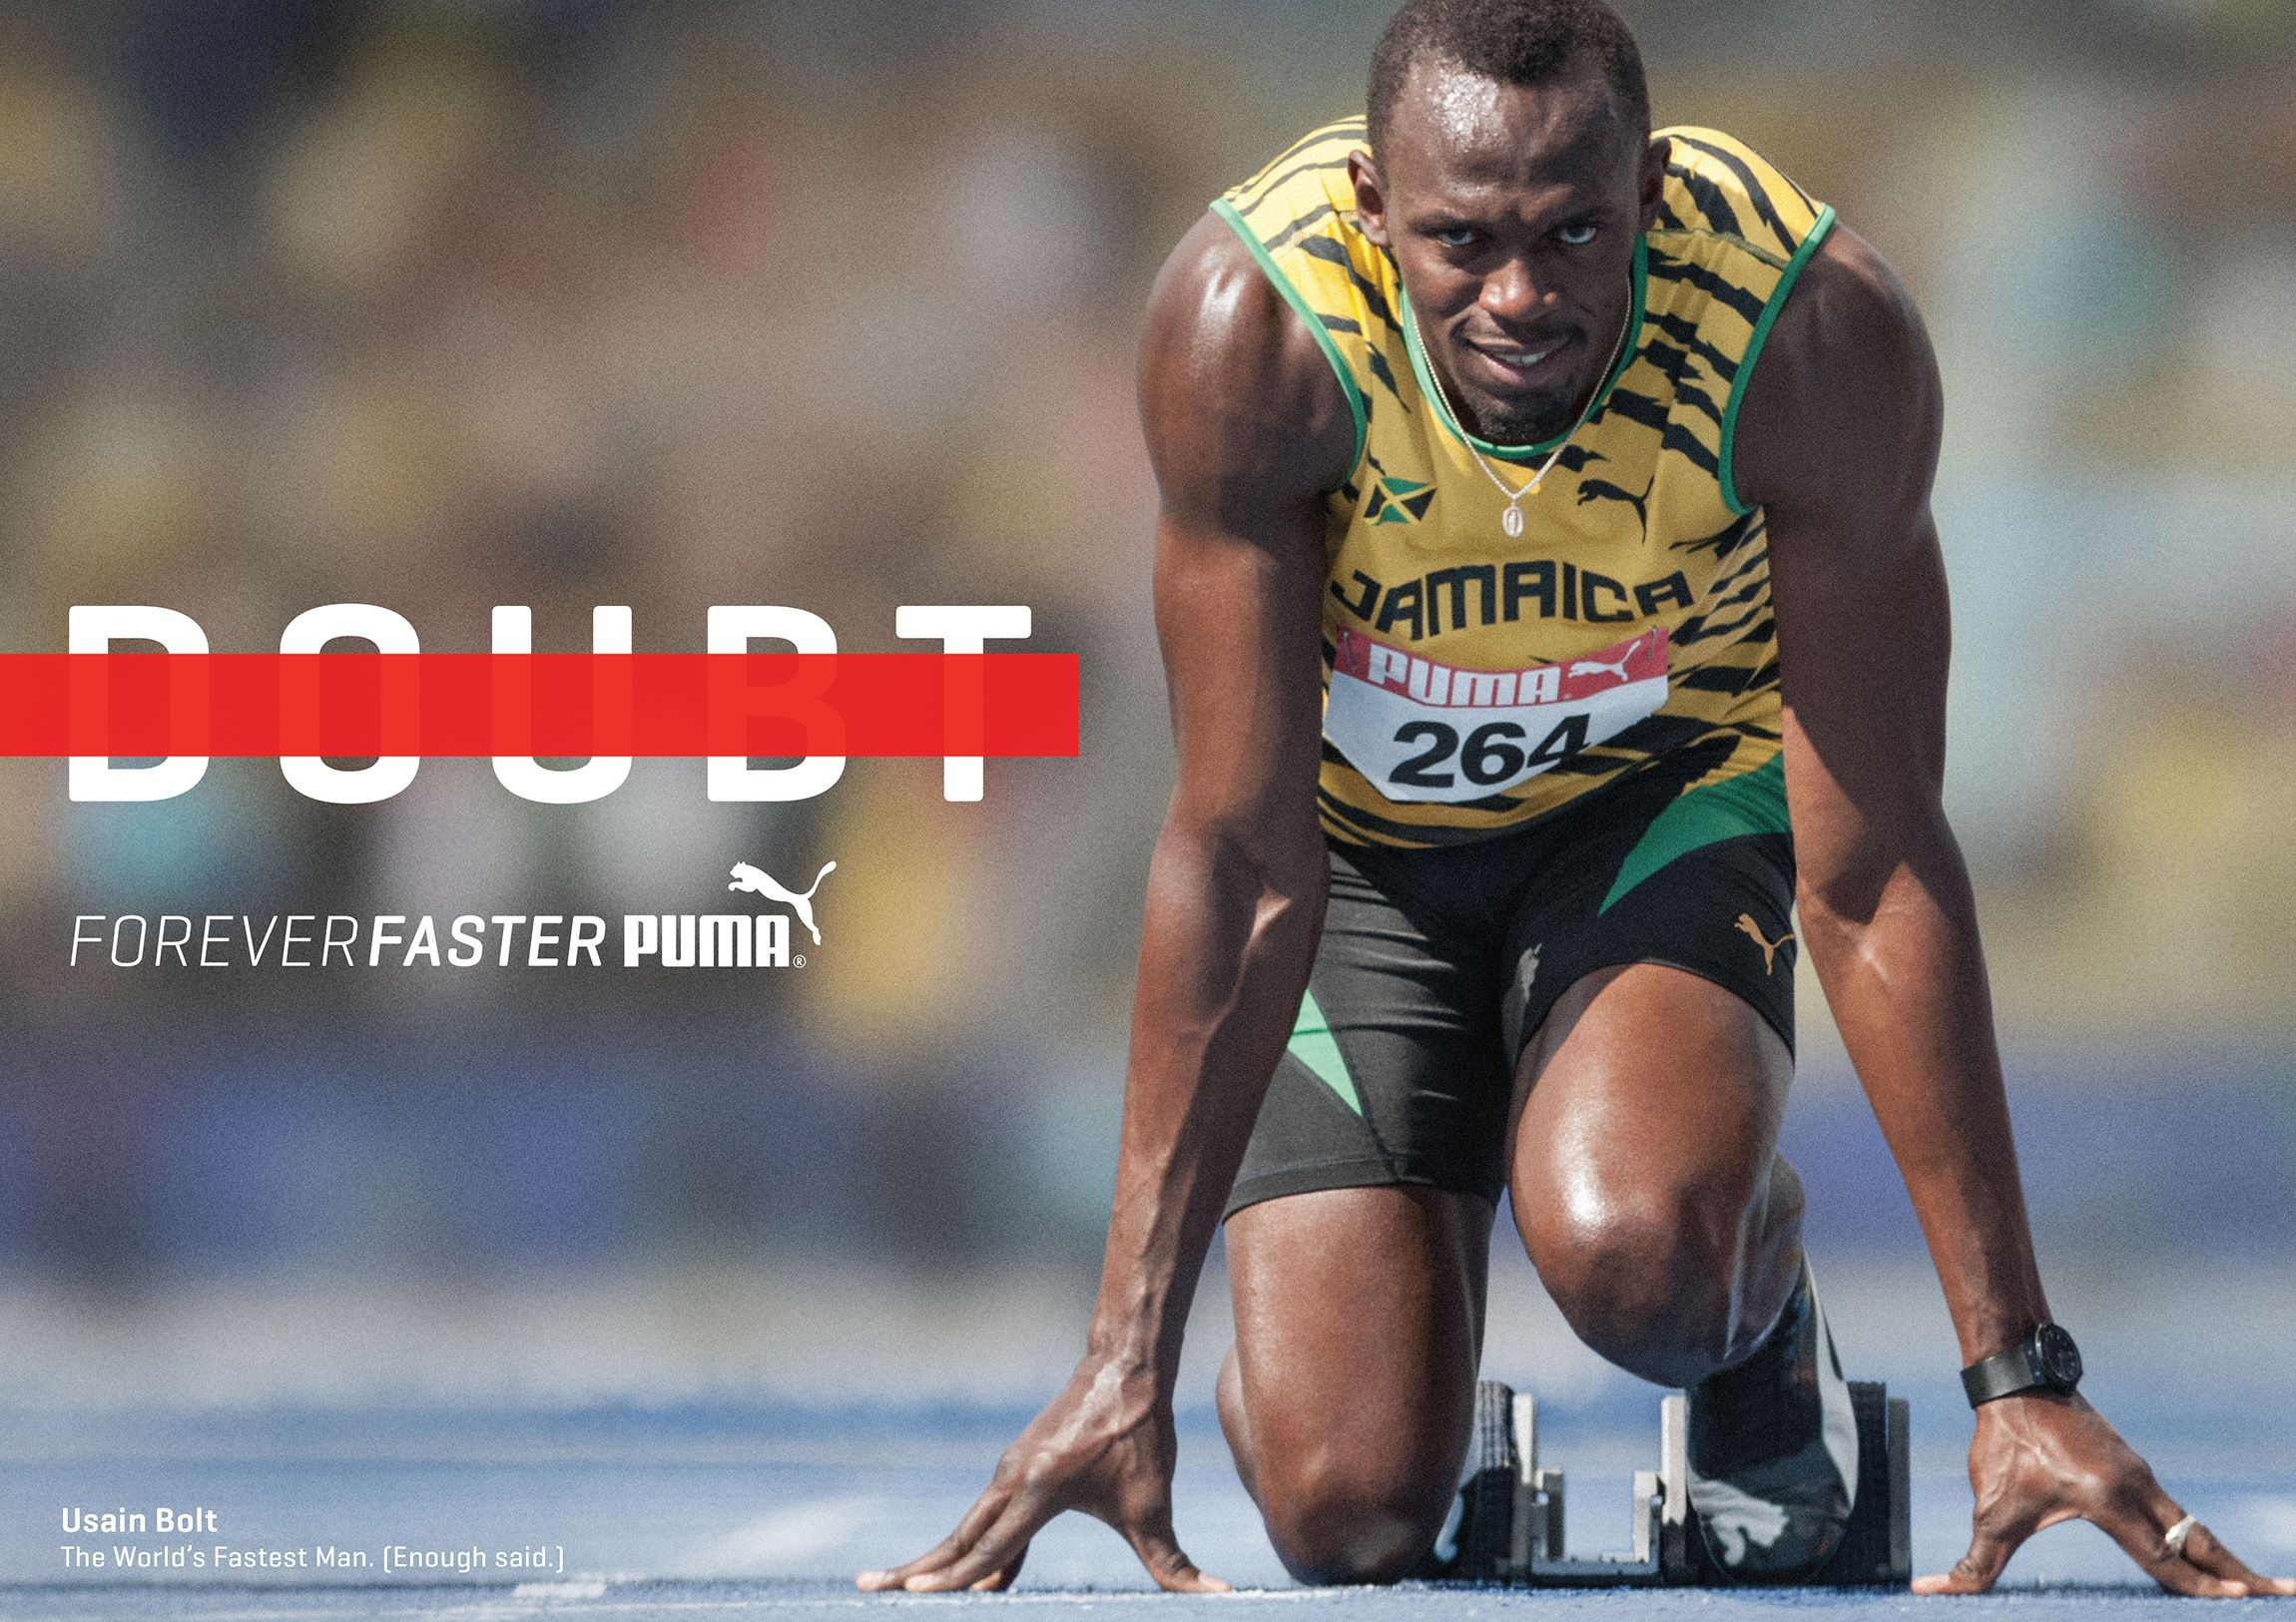 Puma Forever Faster   Sports marketing, Fastest man, Twitter s